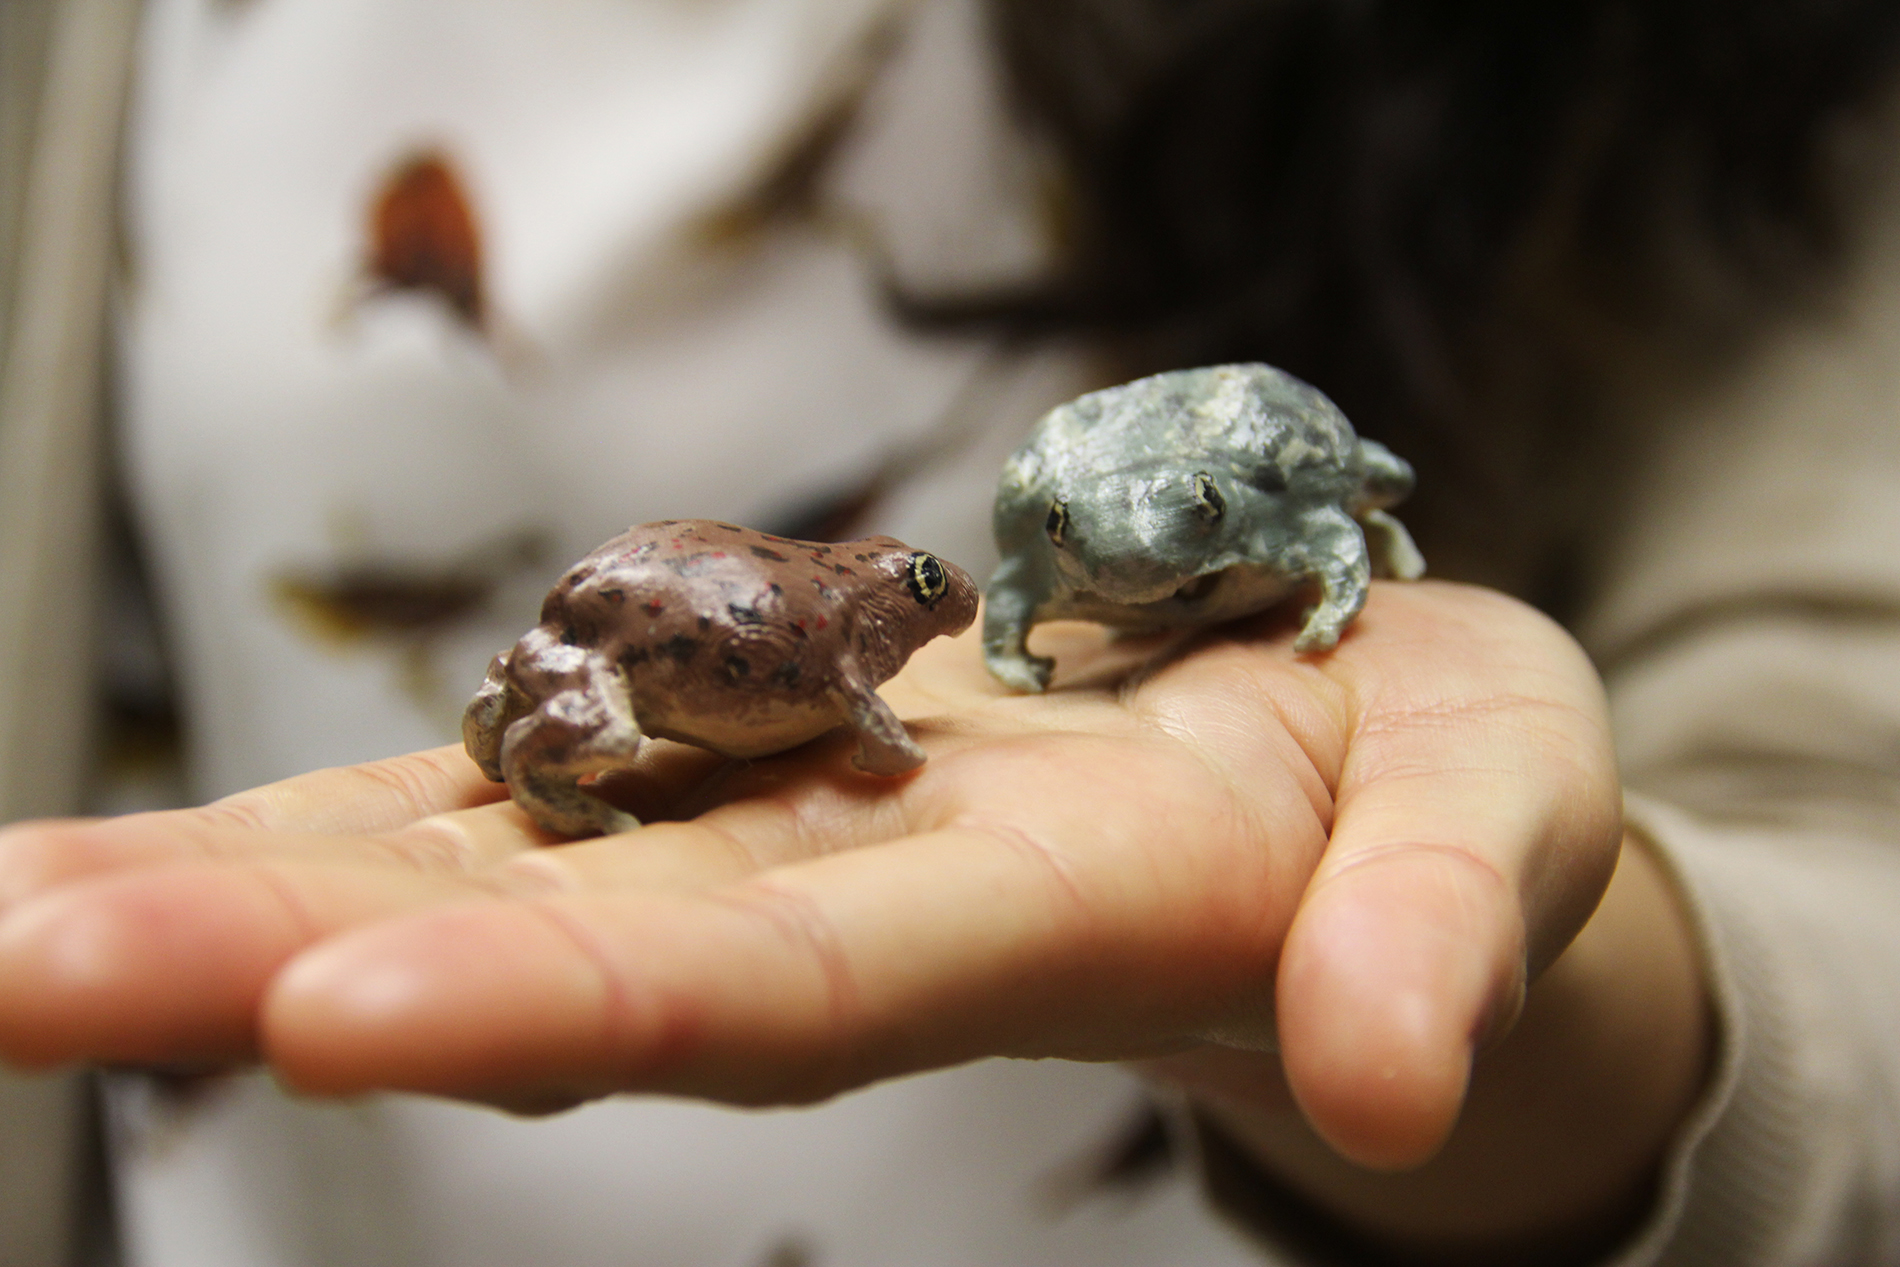 two 3-D printed spadefoot toads, one green and one brown-red, sit in the hand of a woman who studies them